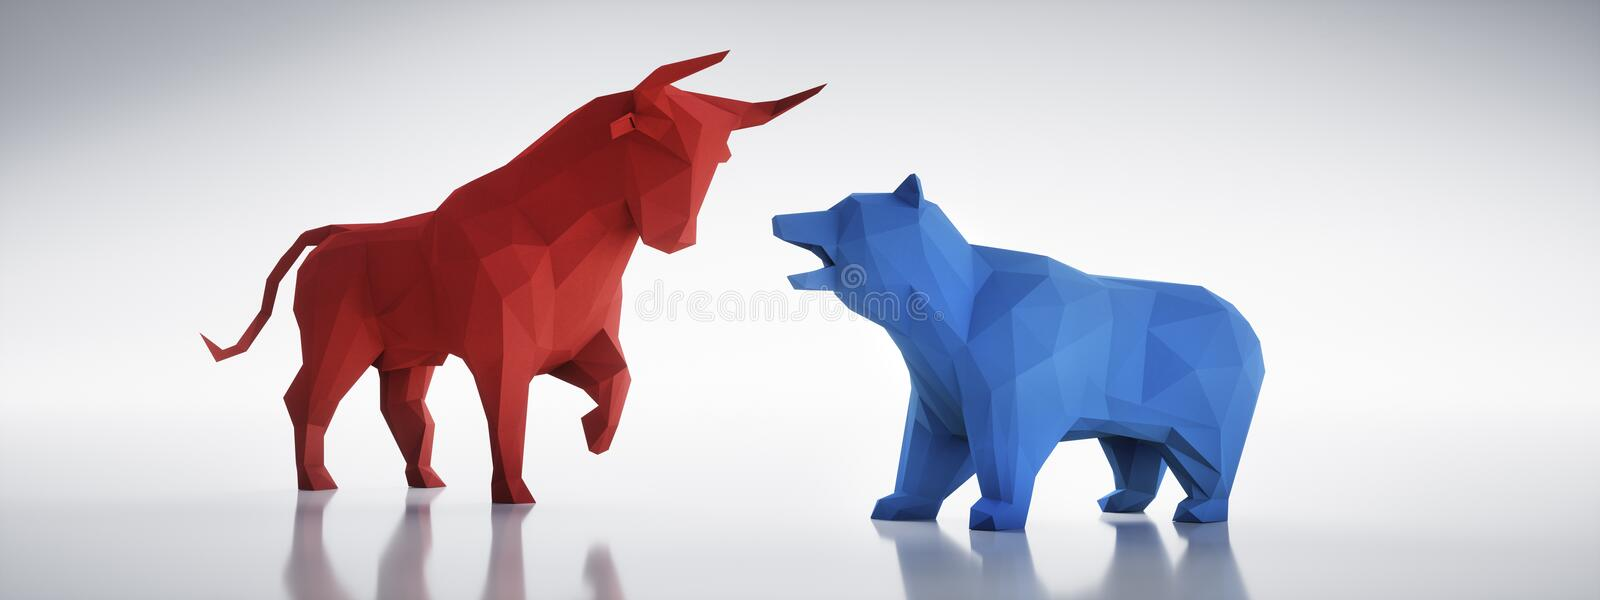 Red bull and blue bear on a white backdrop vector illustration